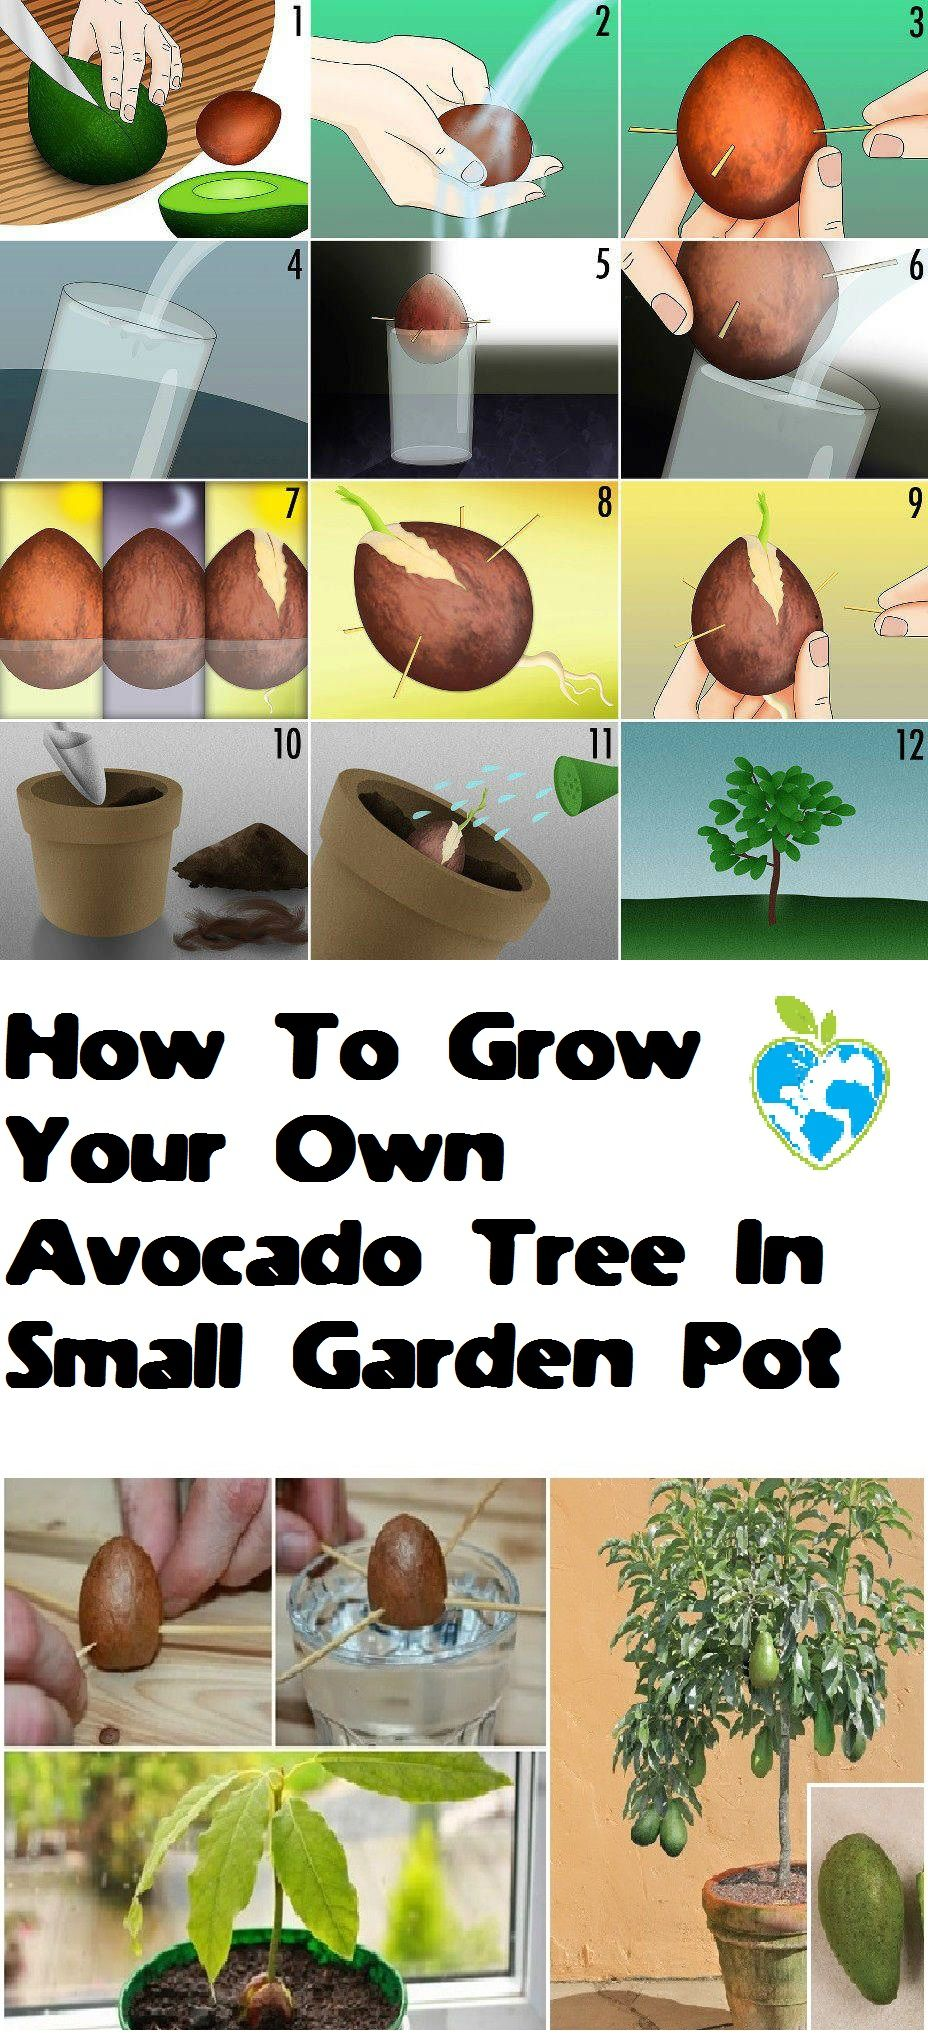 Hydroponic Dünger How To Grow Your Own Avocado Tree In Small Garden Pot Hydroponic